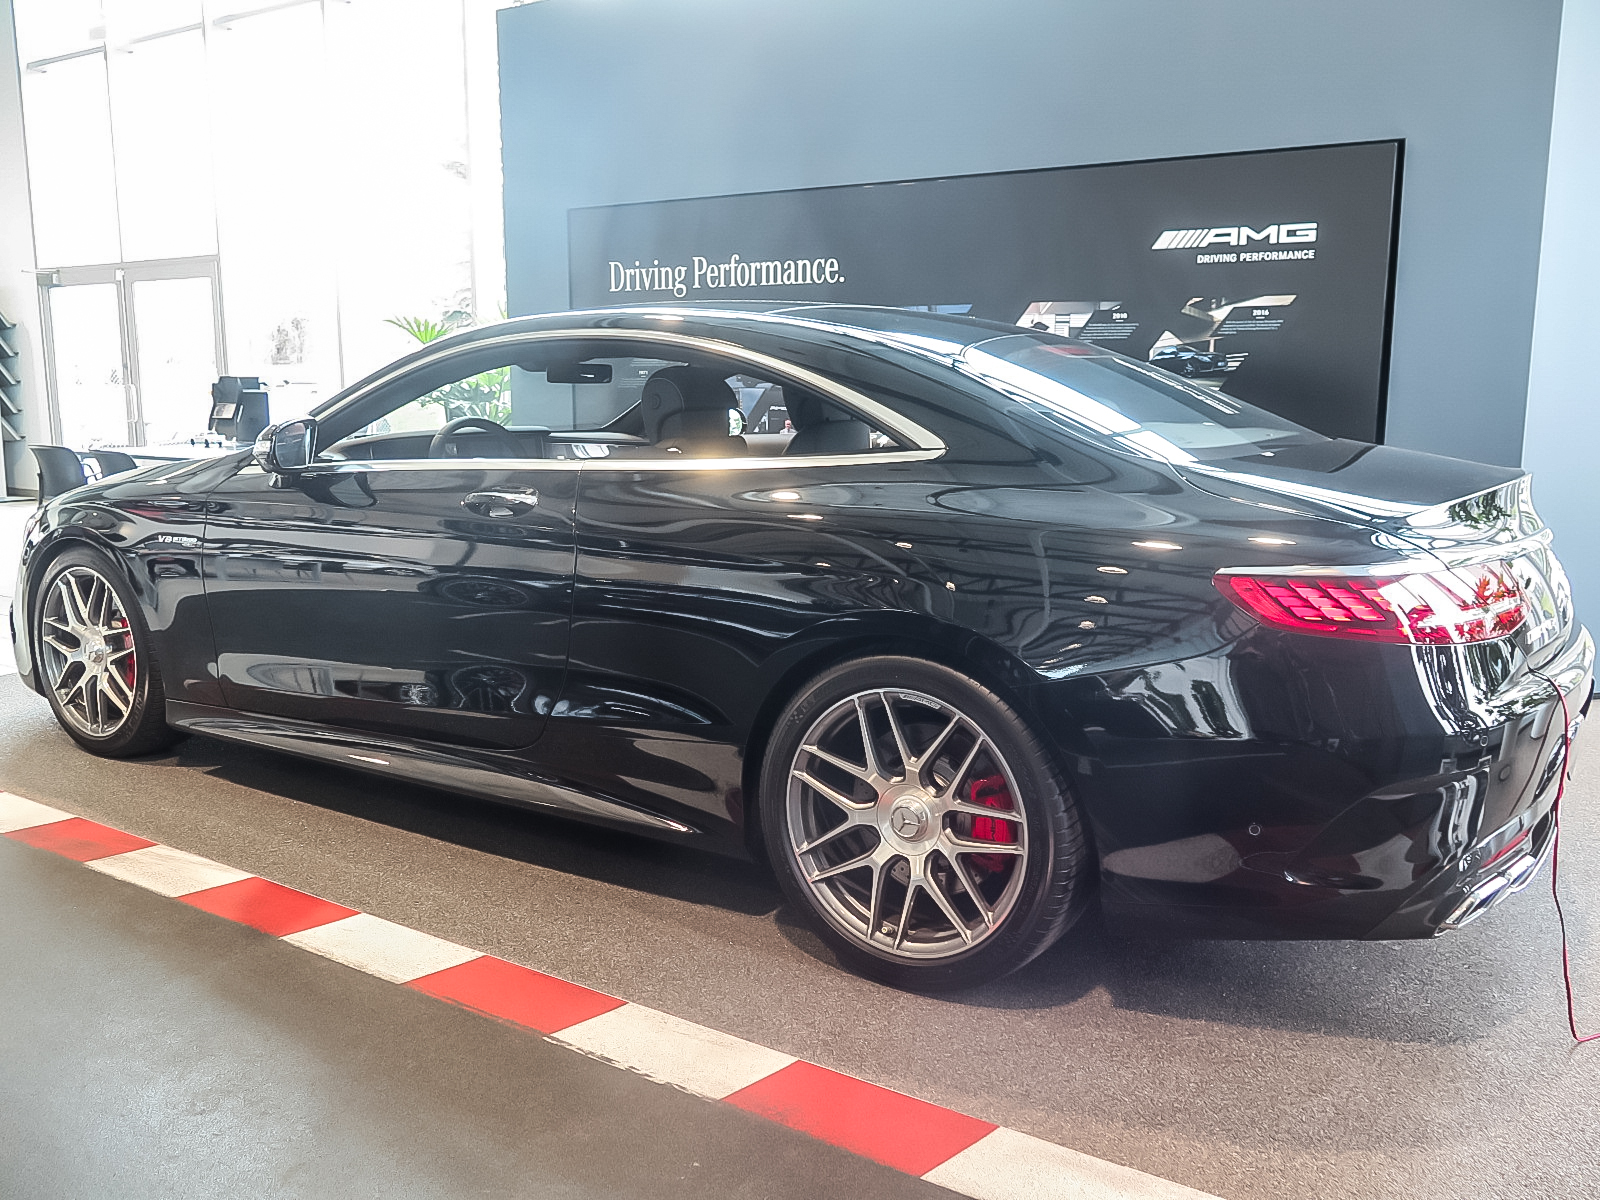 New 2019 Mercedes-Benz S63 AMG 4MATIC+ Coupe